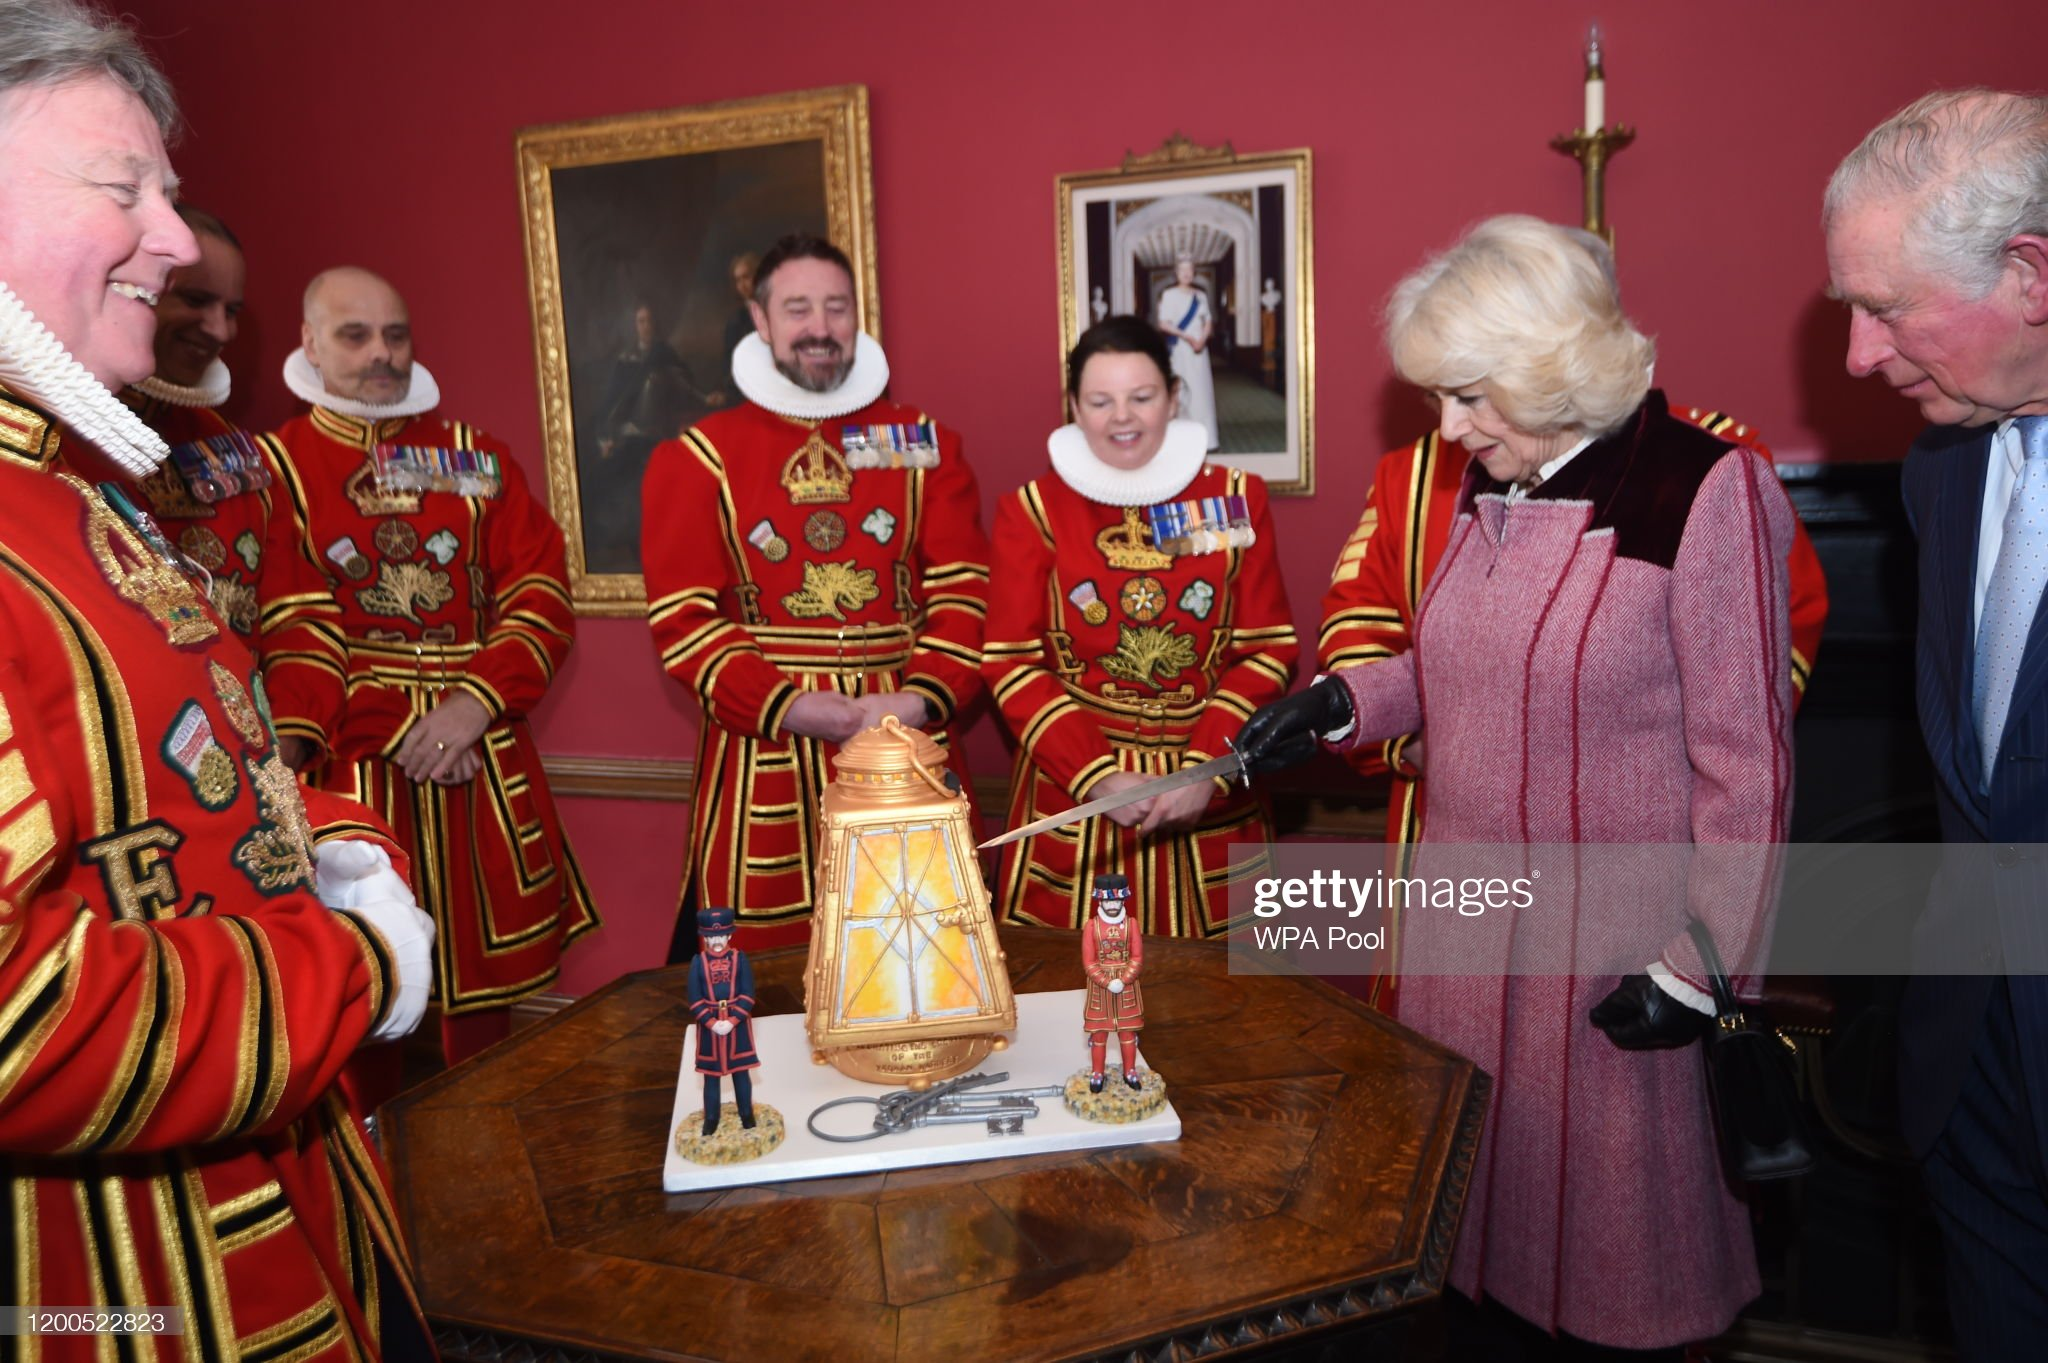 prince-charles-prince-of-wales-and-camilla-duchess-of-cornwall-cut-a-picture-id1200522823